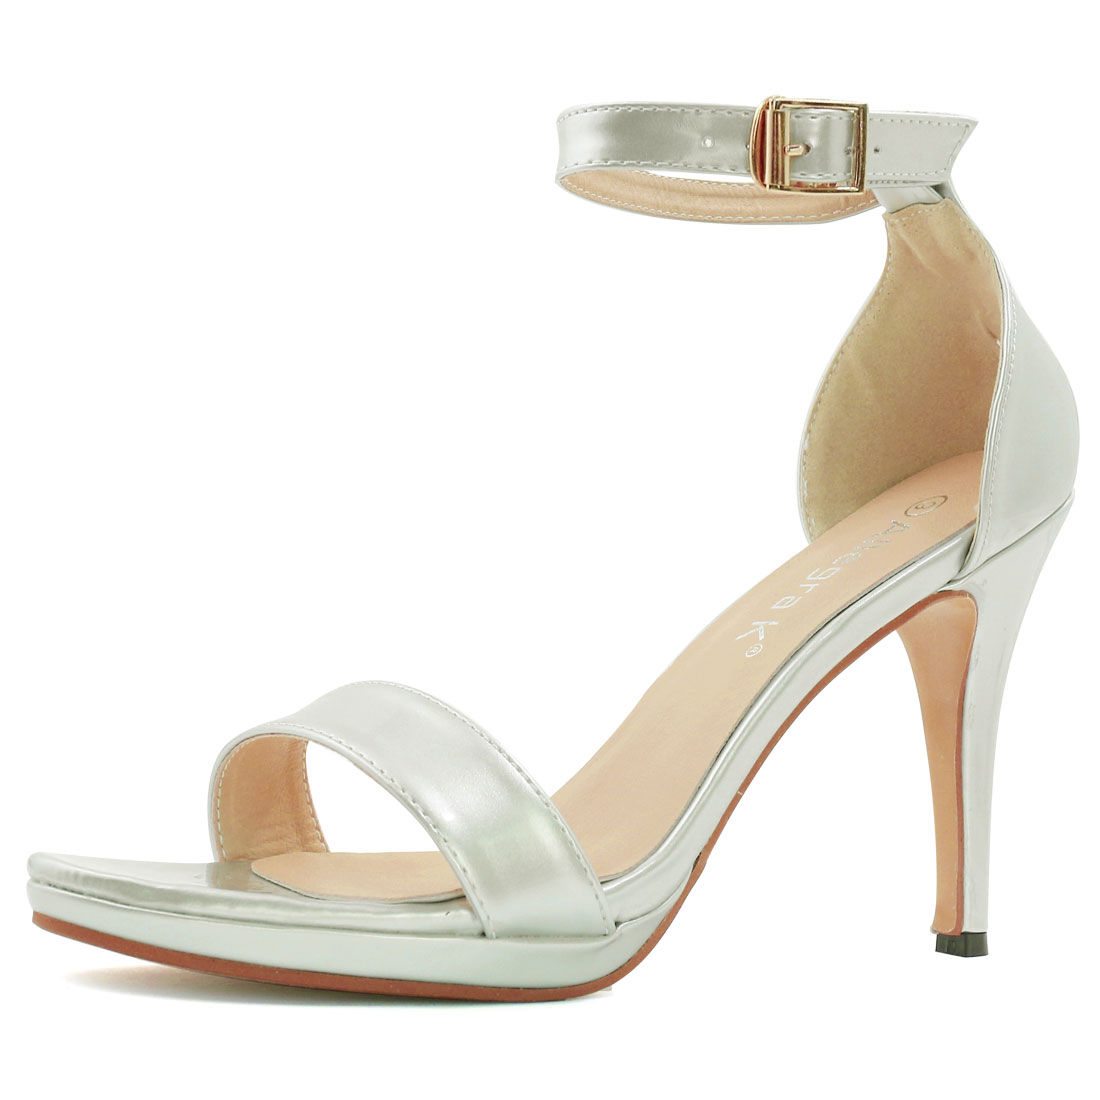 Woman Open Toe High Heel Metallic Ankle Strap Sandals Silver US 7.5